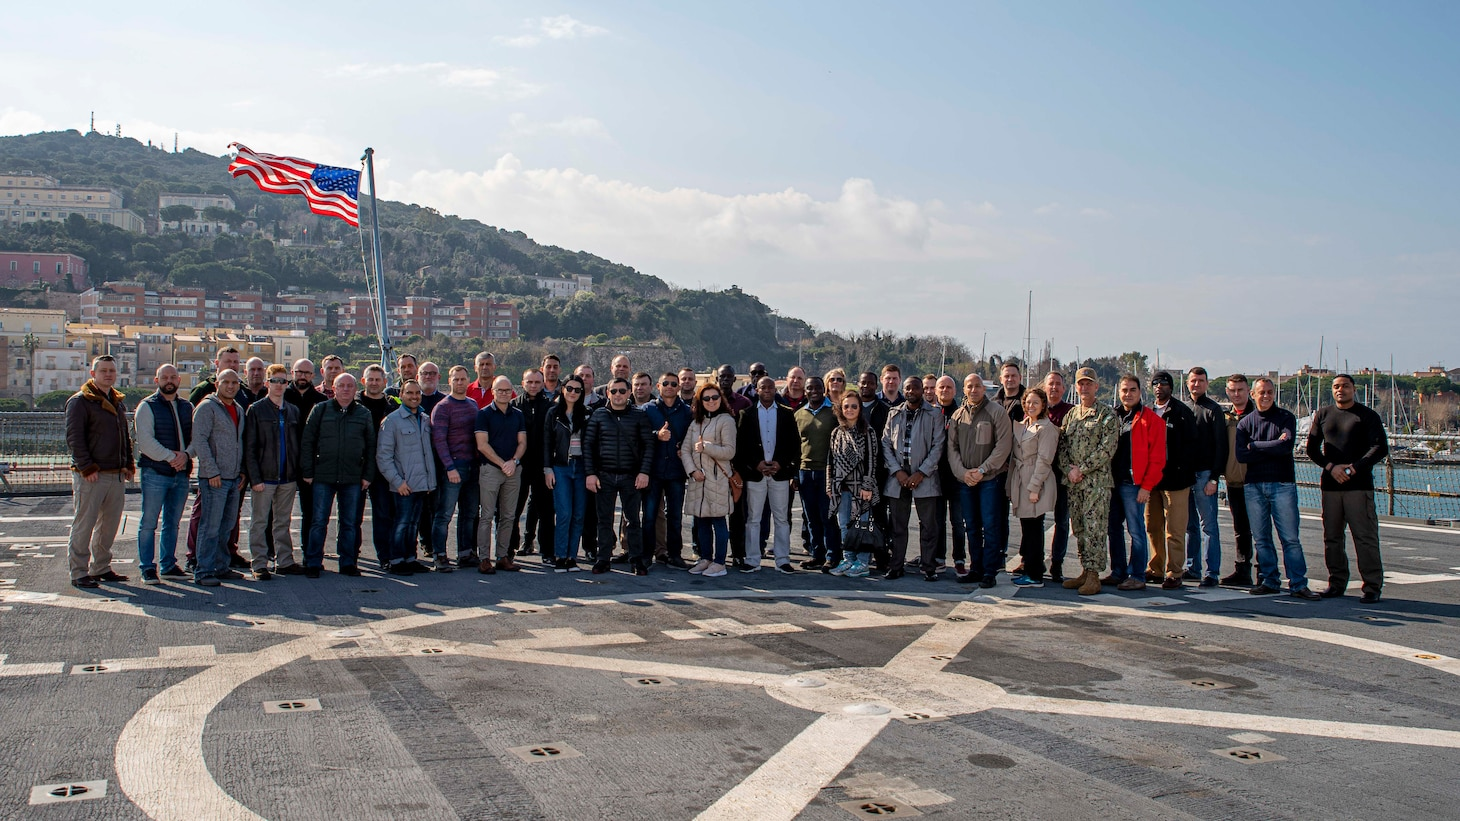 Attendees of the Commander, U.S. Naval Forces Europe, U.S. Naval Forces Africa, and 6th Fleet Fiscal Year 2020 Senior Enlisted Leadership Symposium pose for a photo aboard the Blue Ridge-class command and control ship USS Mount Whitney (LCC 20) in Gaeta, Italy, Feb. 19, 2020. Mount Whitney is the U.S. 6th Fleet flagship, homeported in Gaeta, and operates with a combined crew of U.S. Sailors and Military Sealift Command civil service mariners.